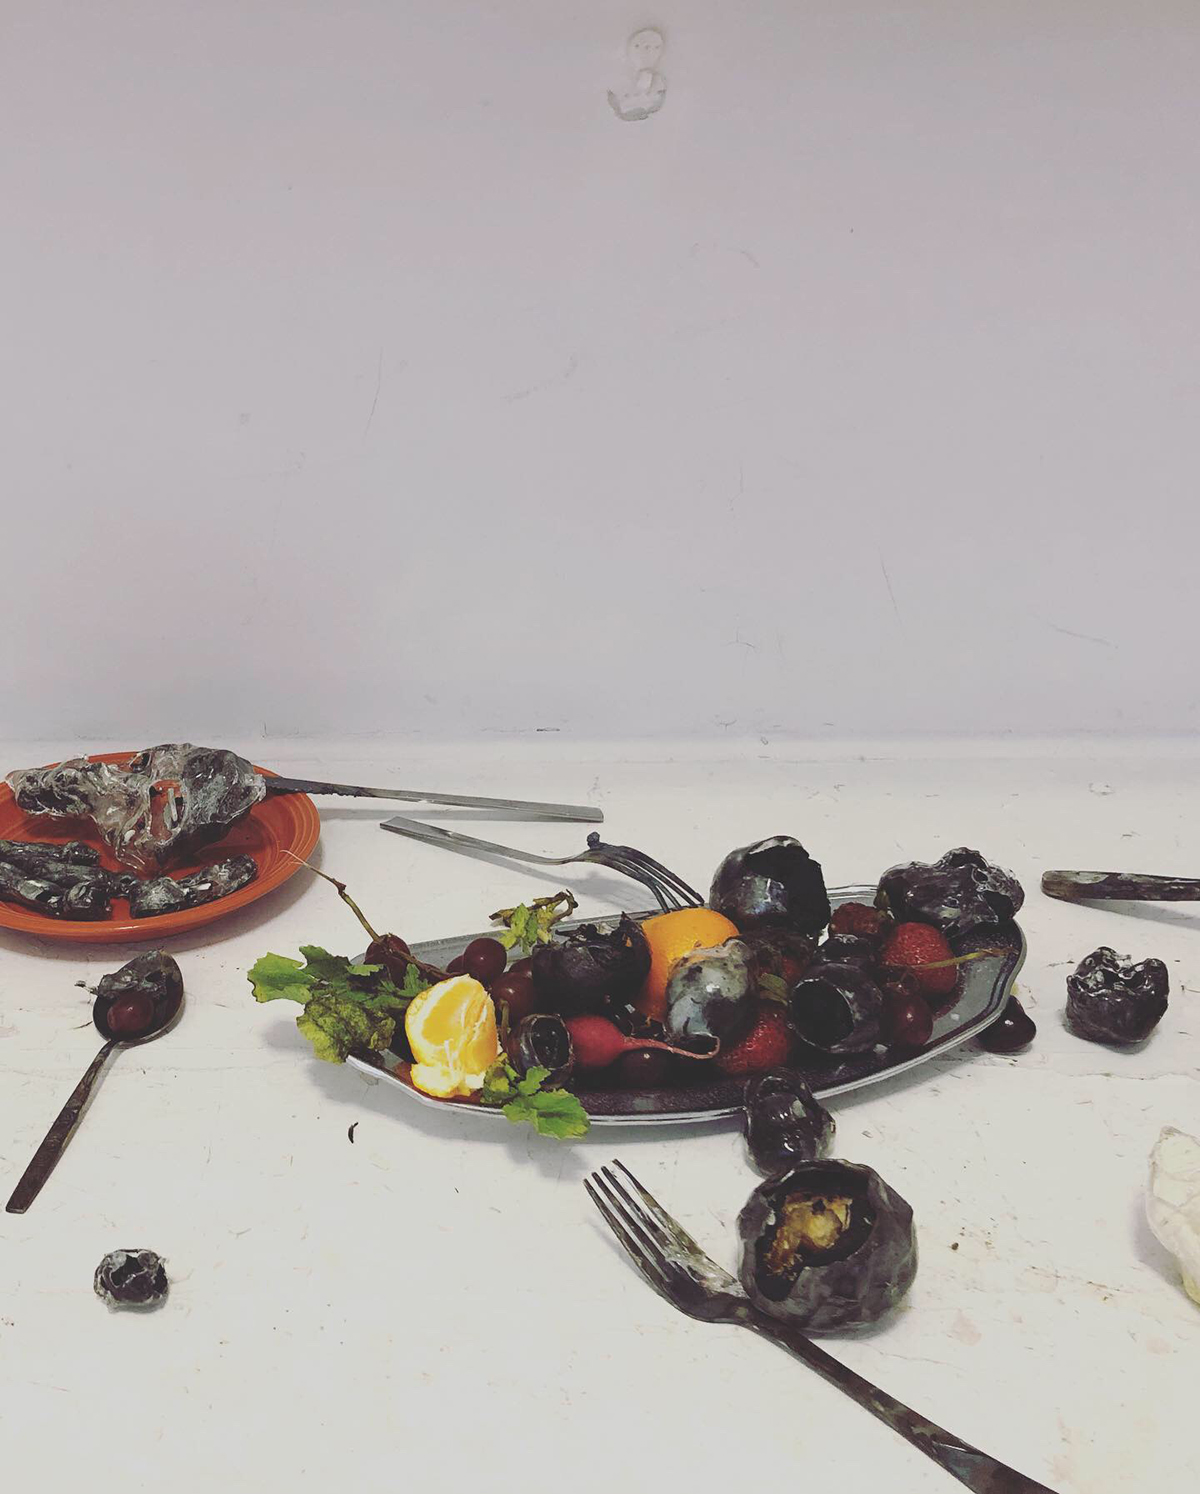 Glass fruit and silverware on a surface. This piece was exhibited at the art festival.